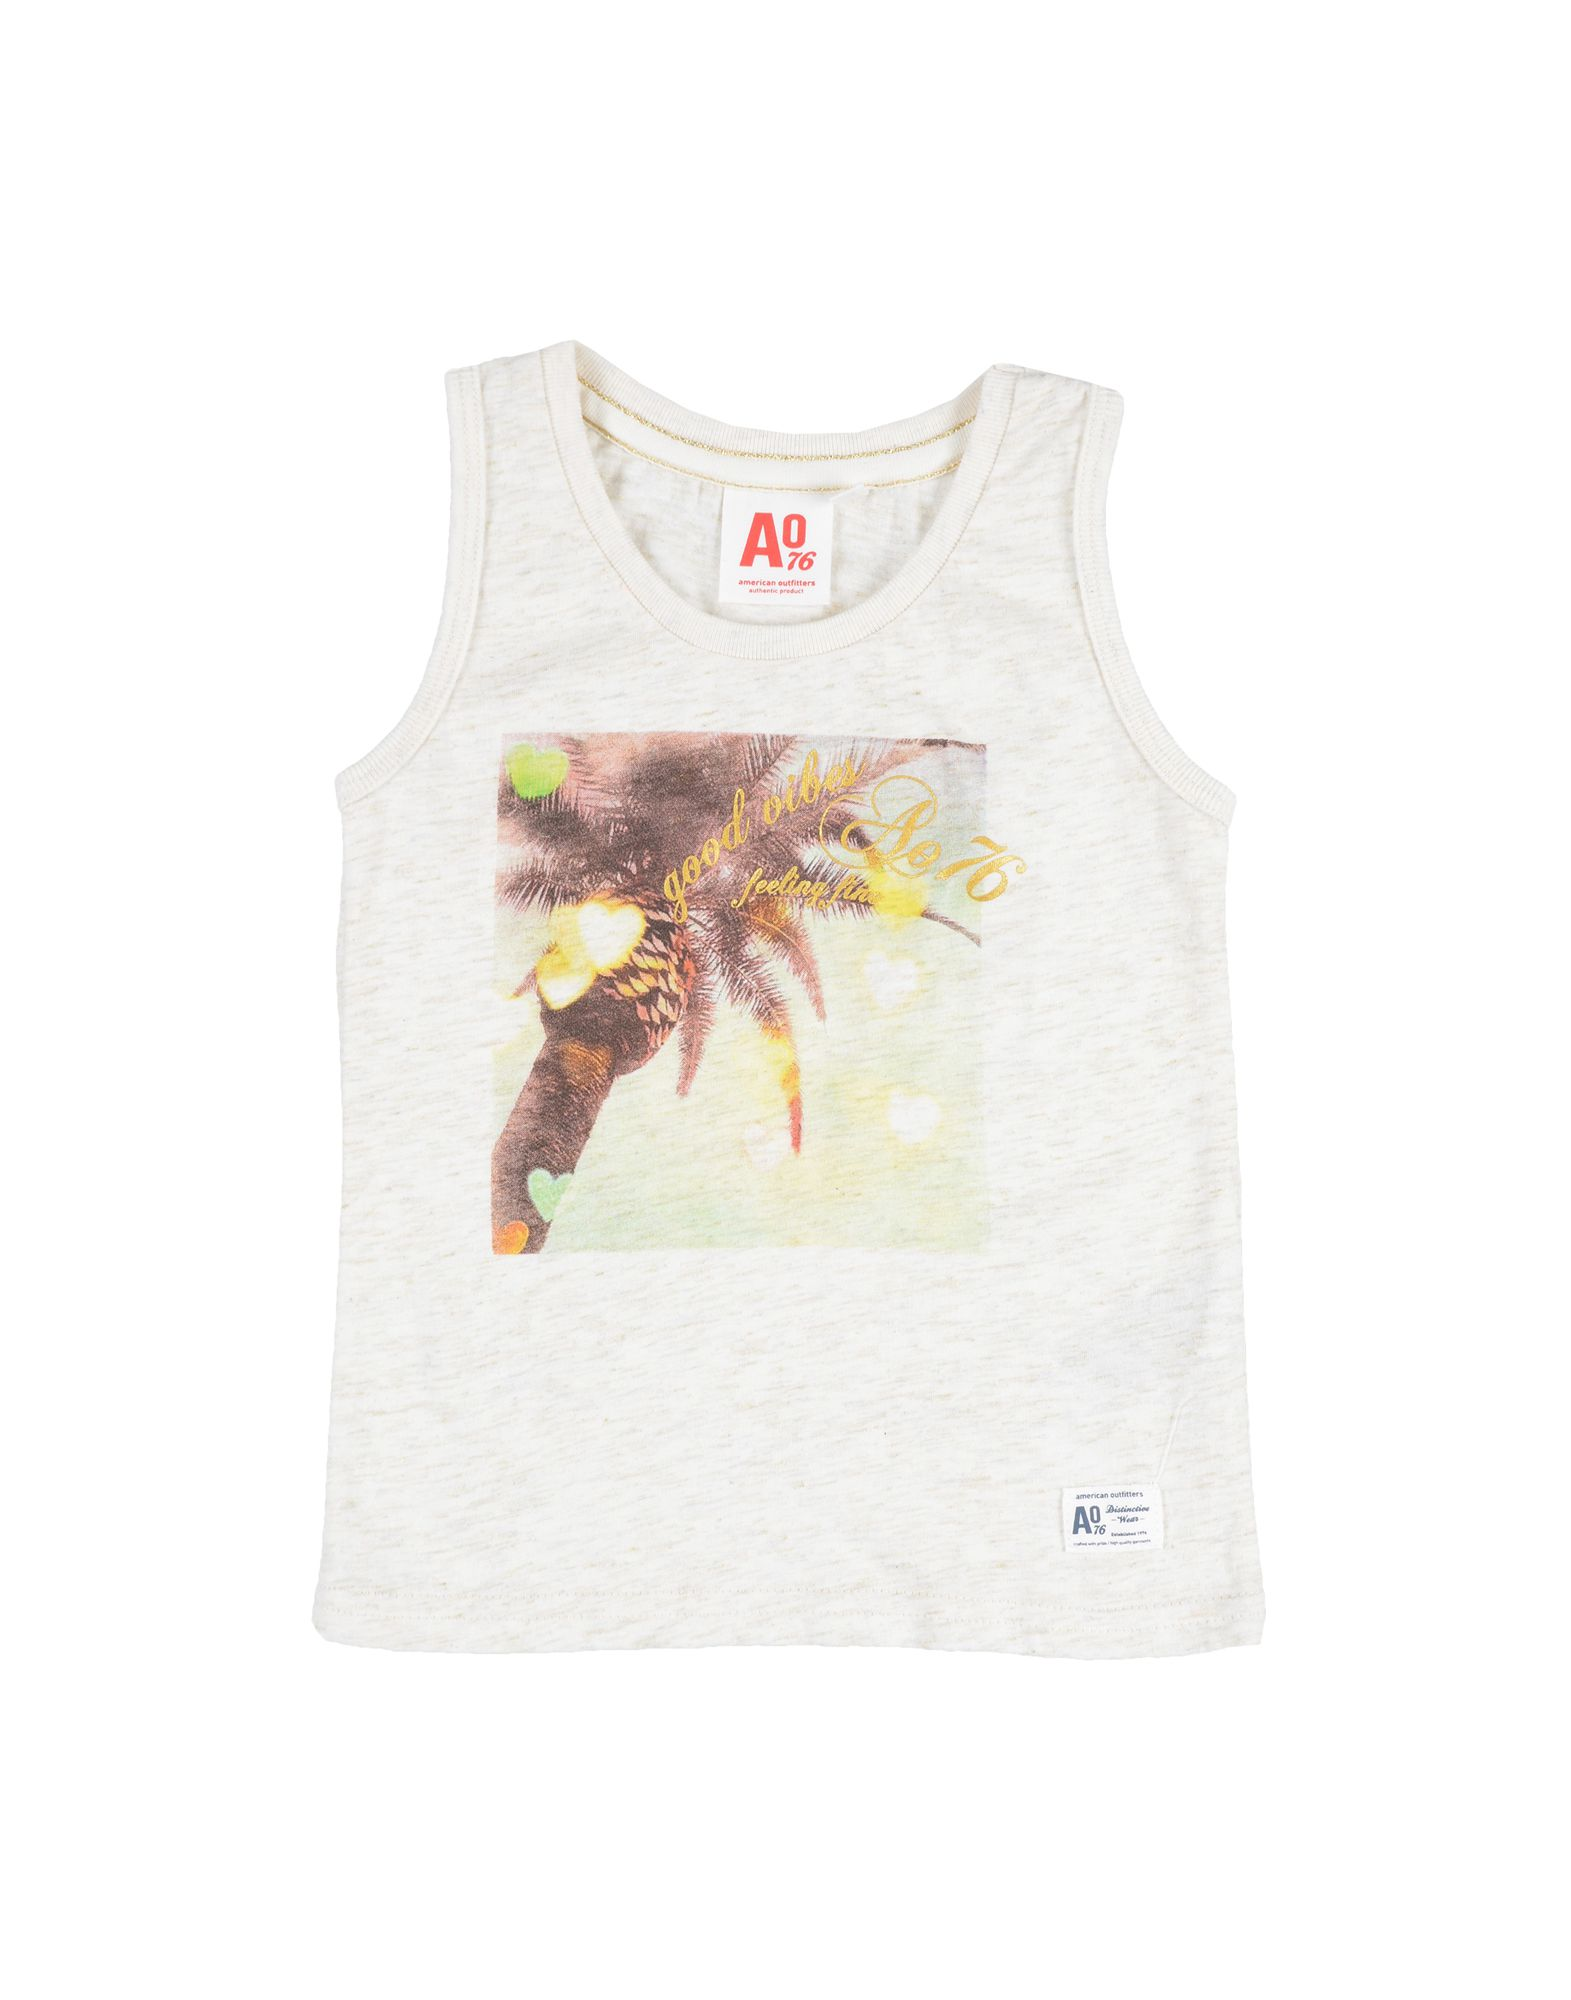 American Outfitters Kids' T-shirts In White